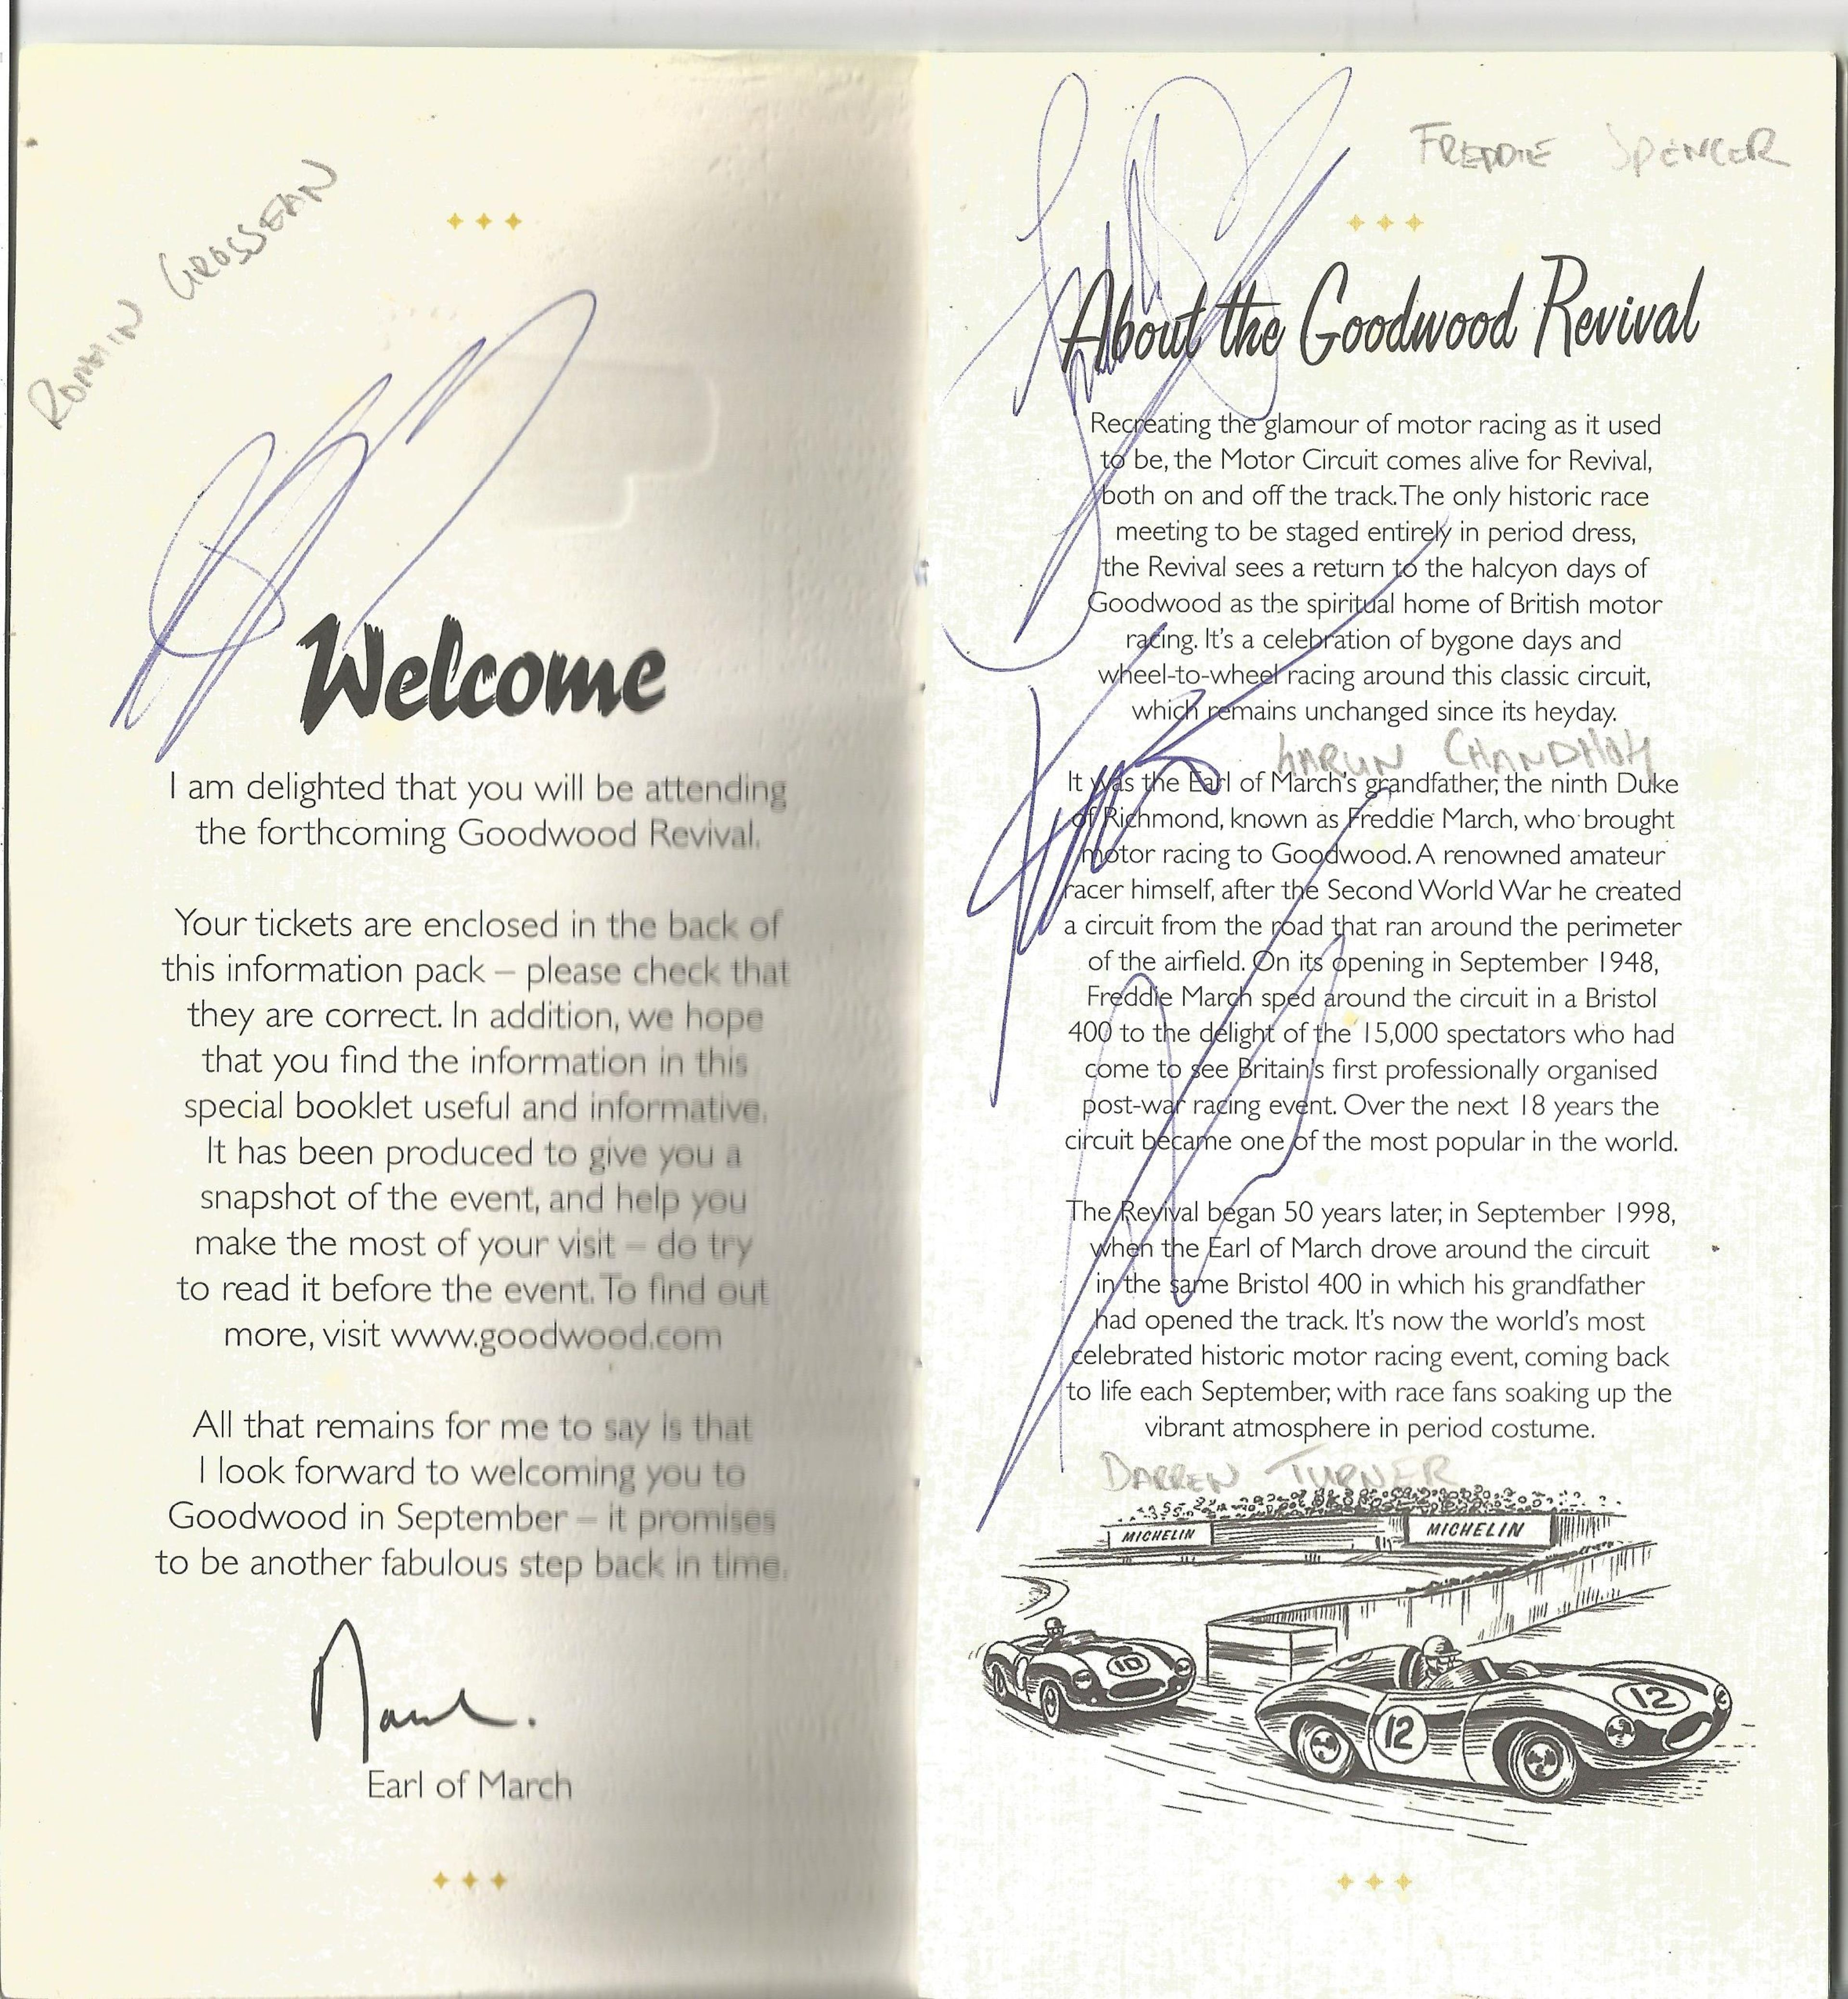 Lot 41 - Motor Racing Goodwood Revival Meeting programme 2018 signed by 34 drivers who took part signatures